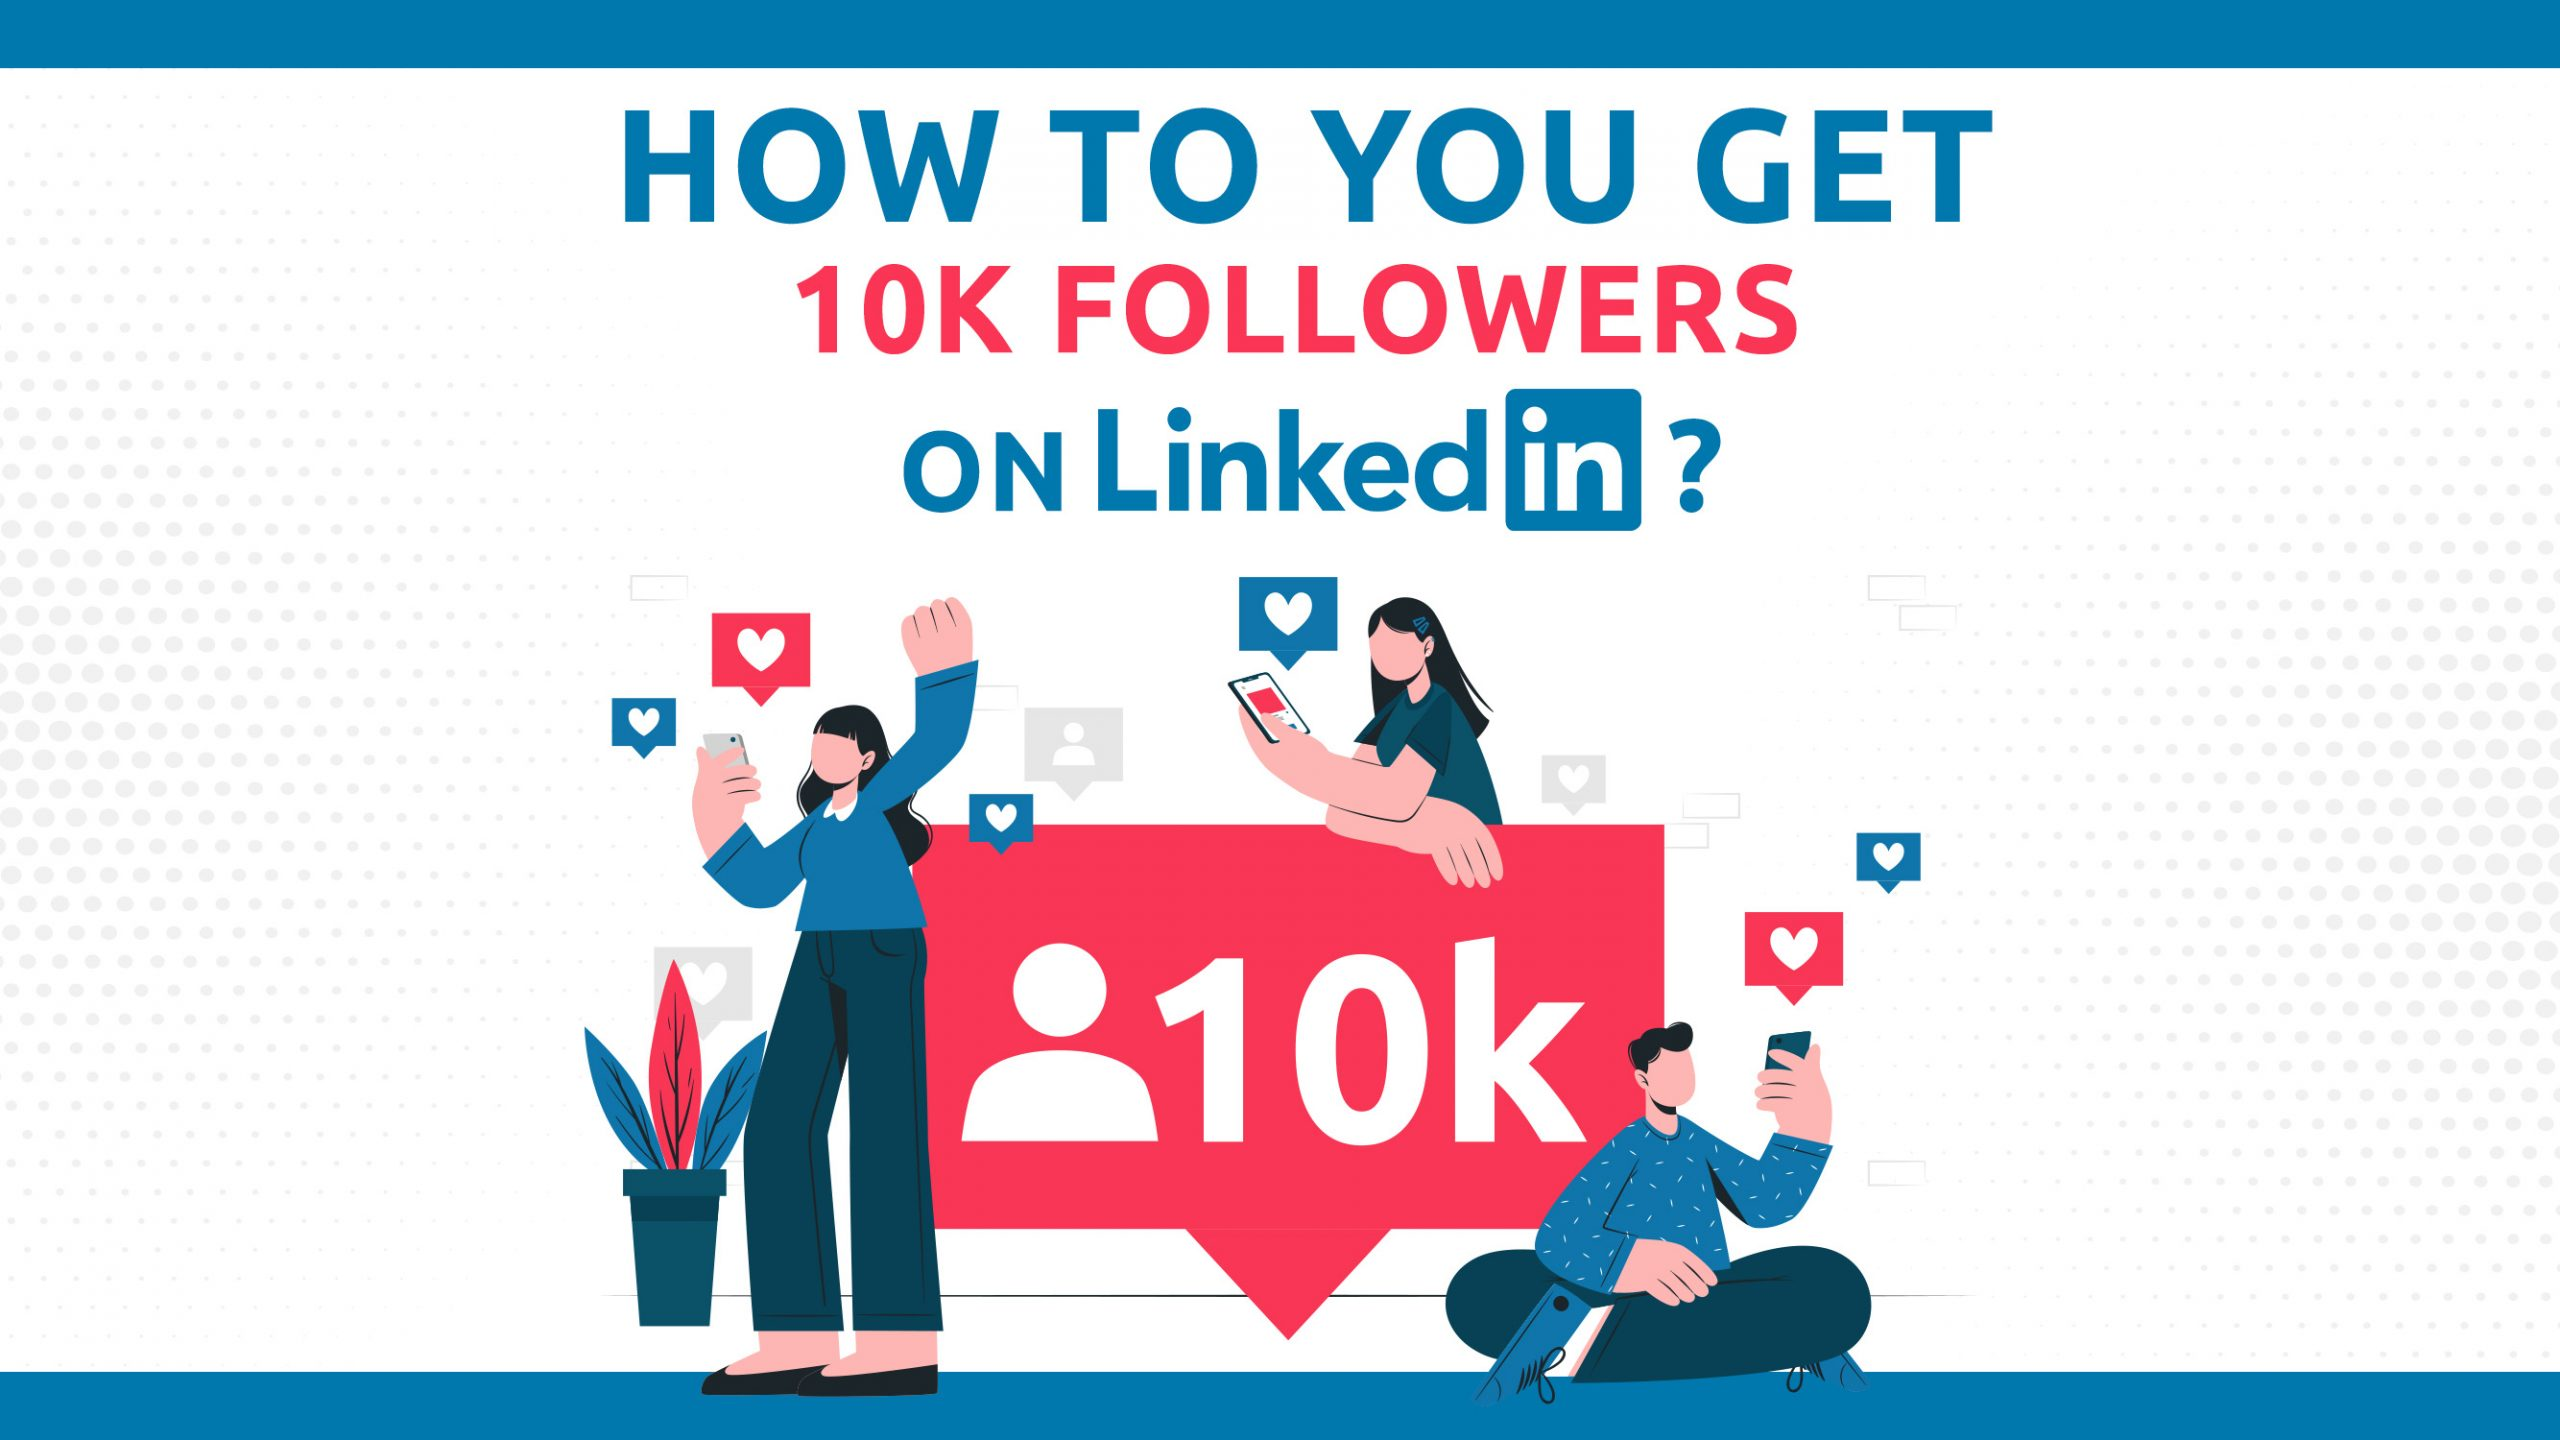 How Do You Get 10k Followers On LinkedIn?